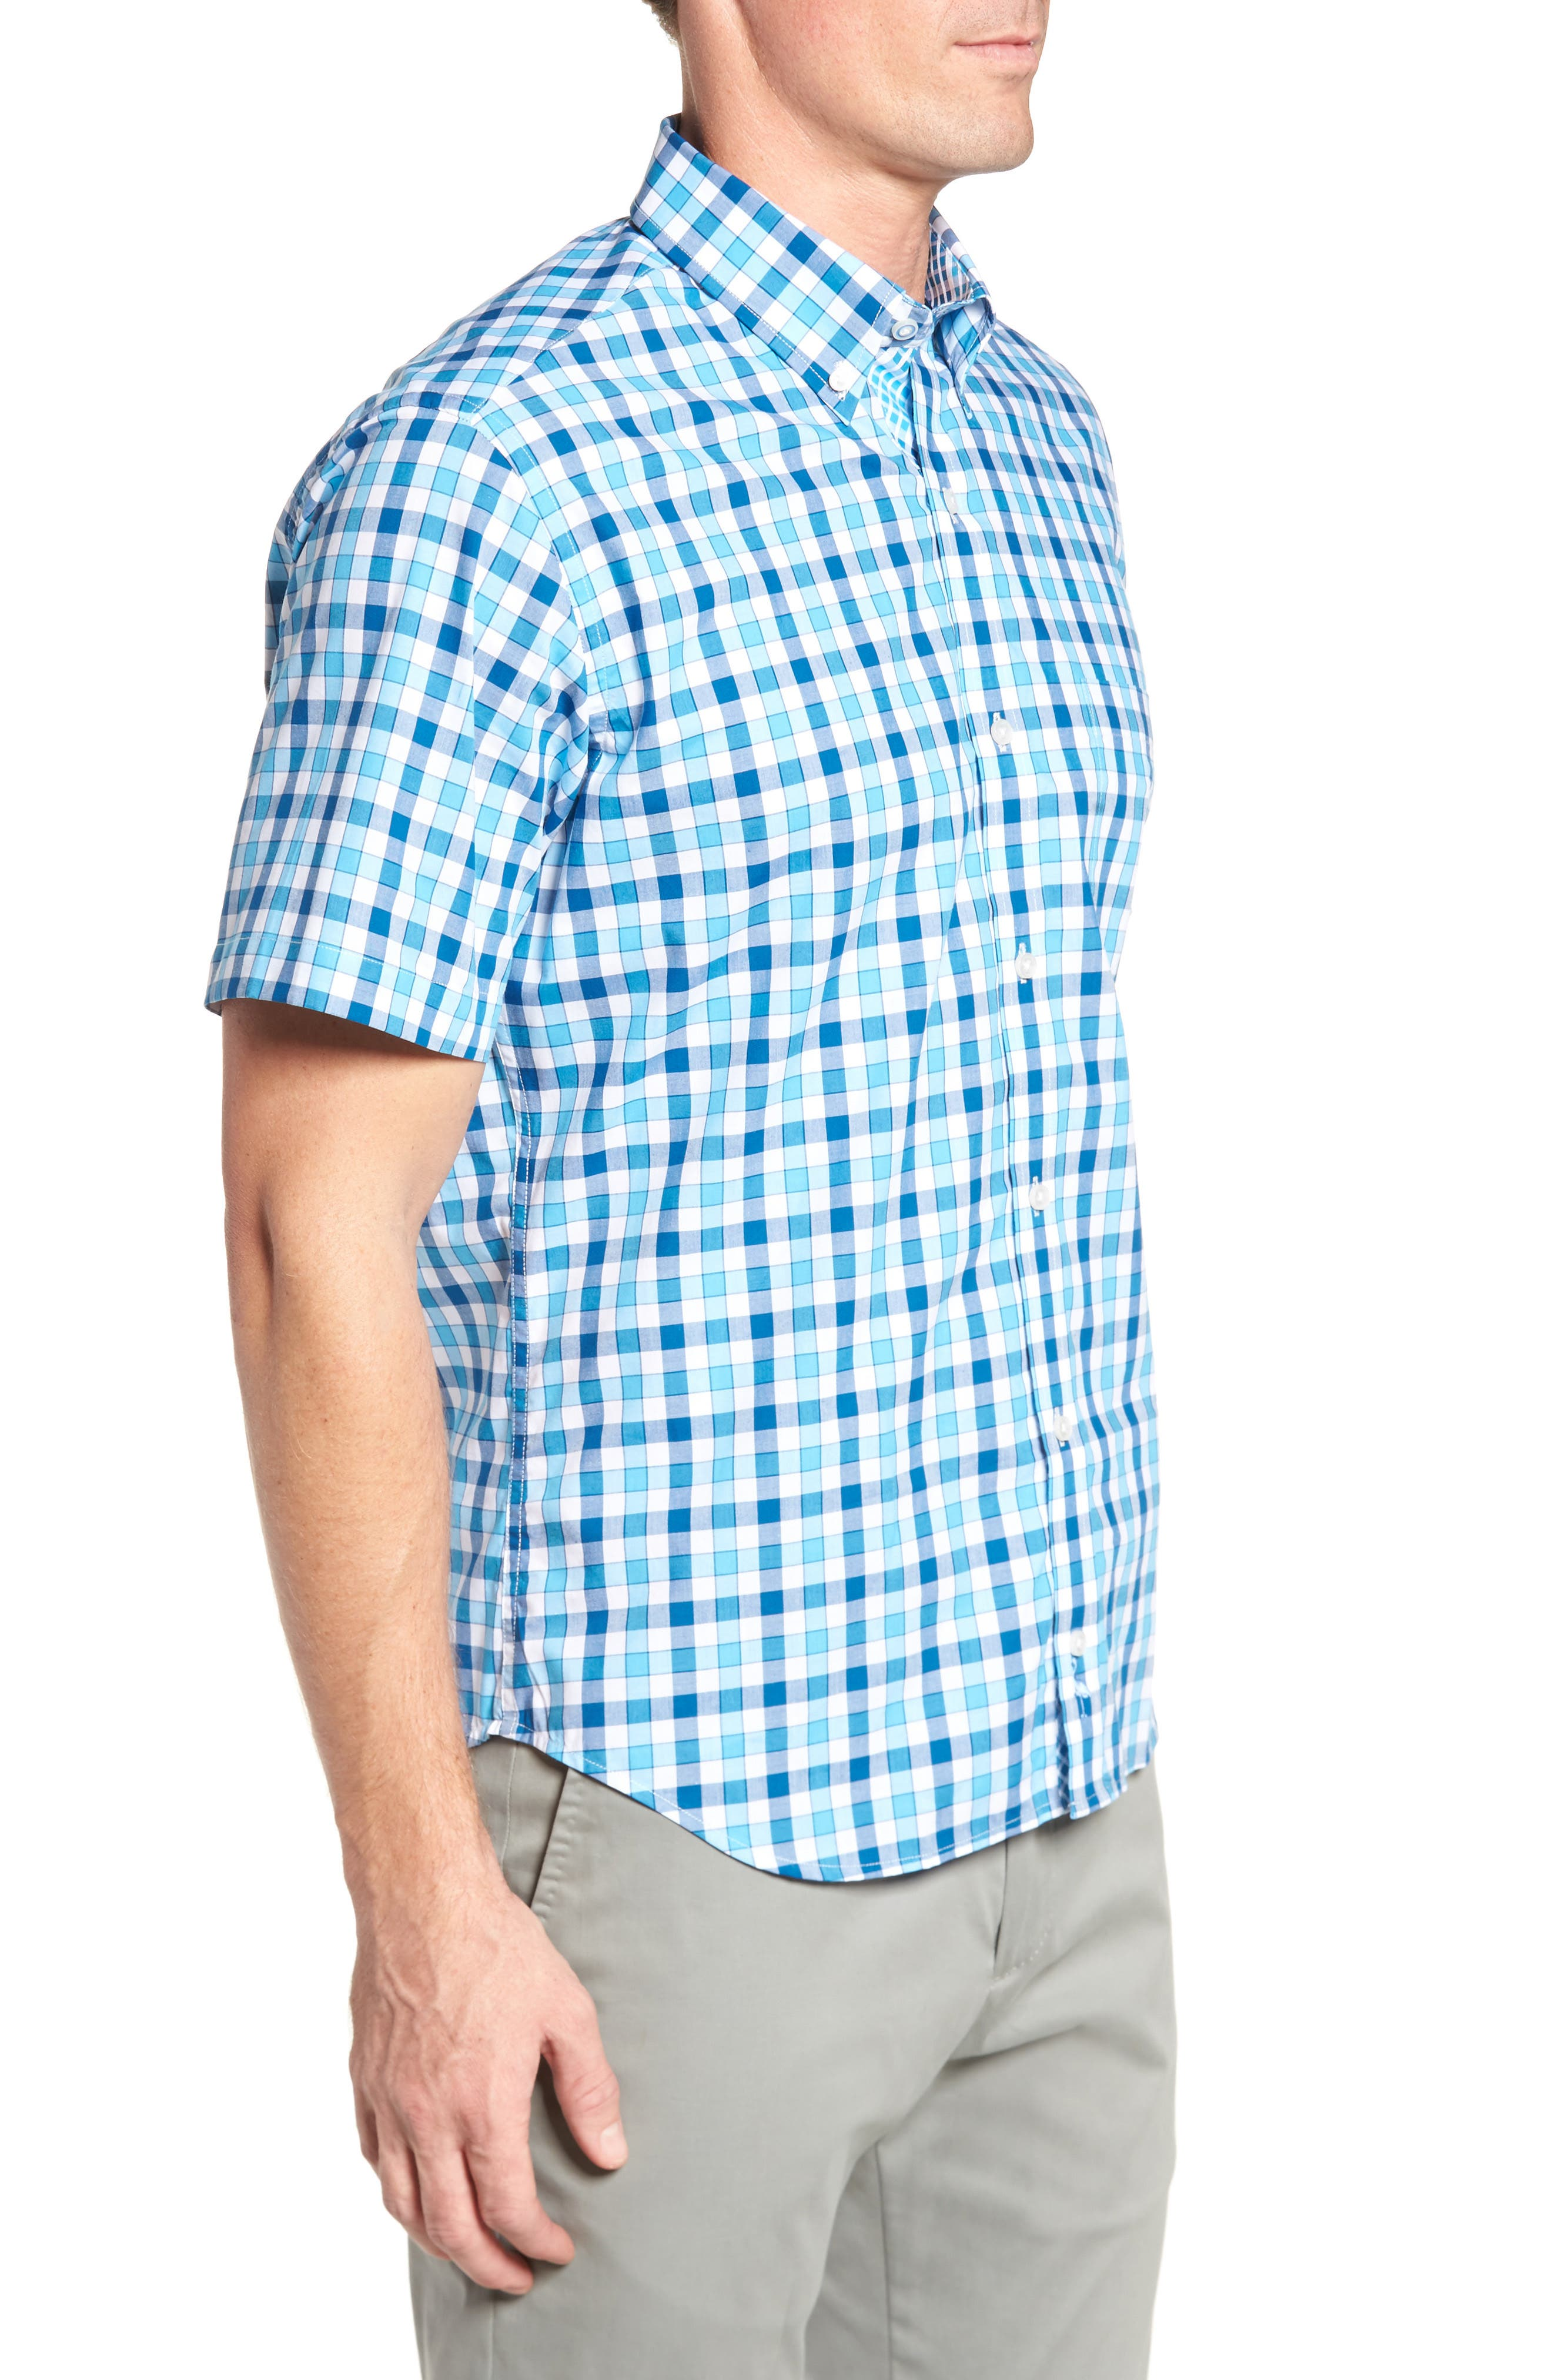 West We Go Regular Fit Plaid Sport Shirt,                             Alternate thumbnail 3, color,                             465